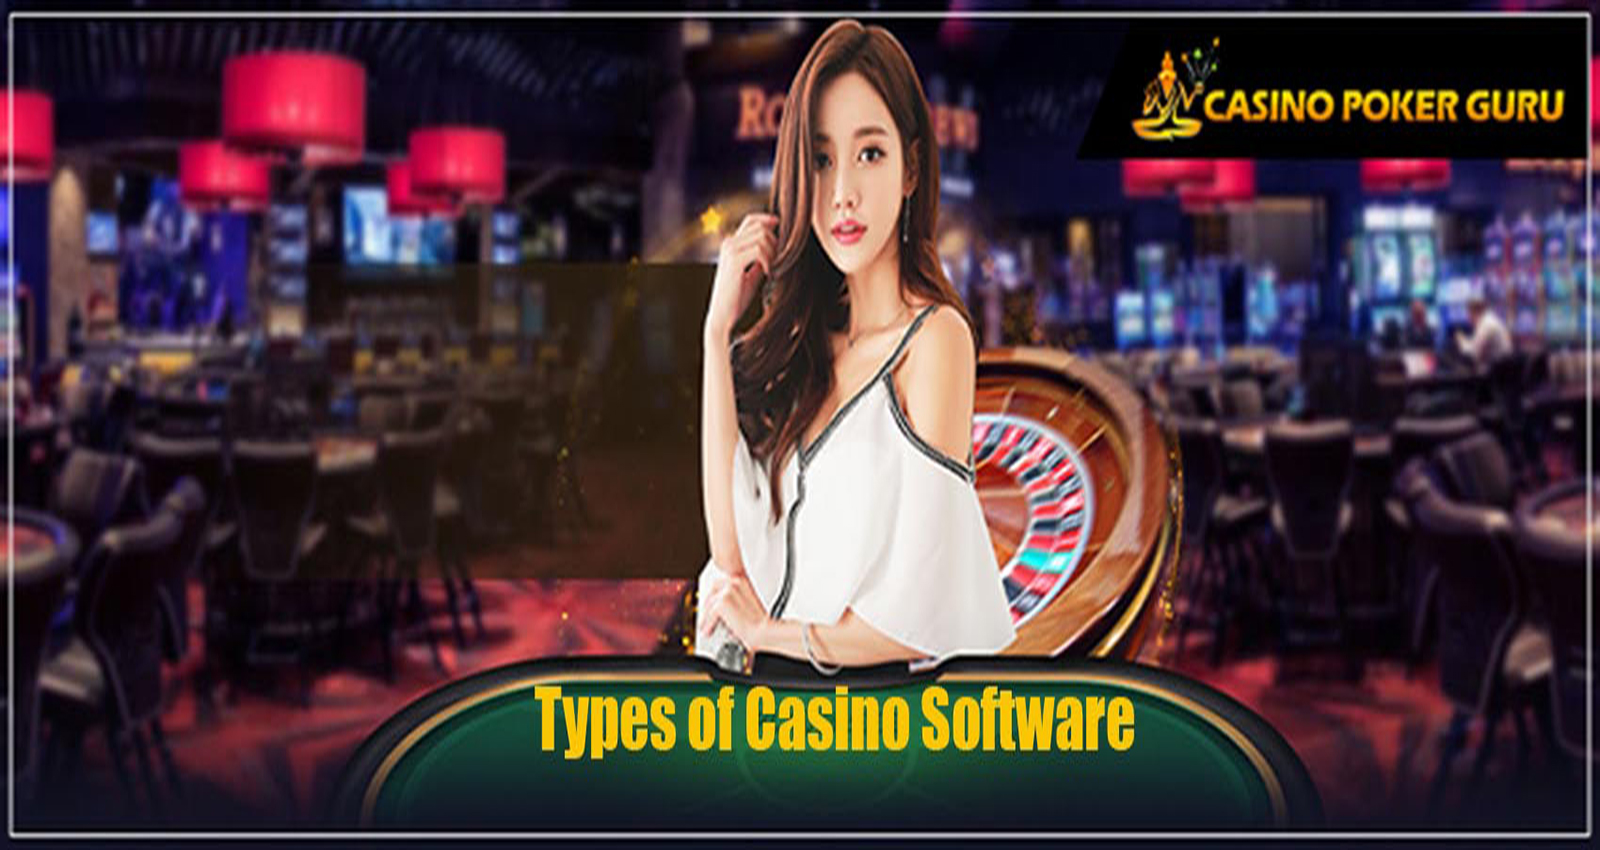 what are the different type of casino software ??